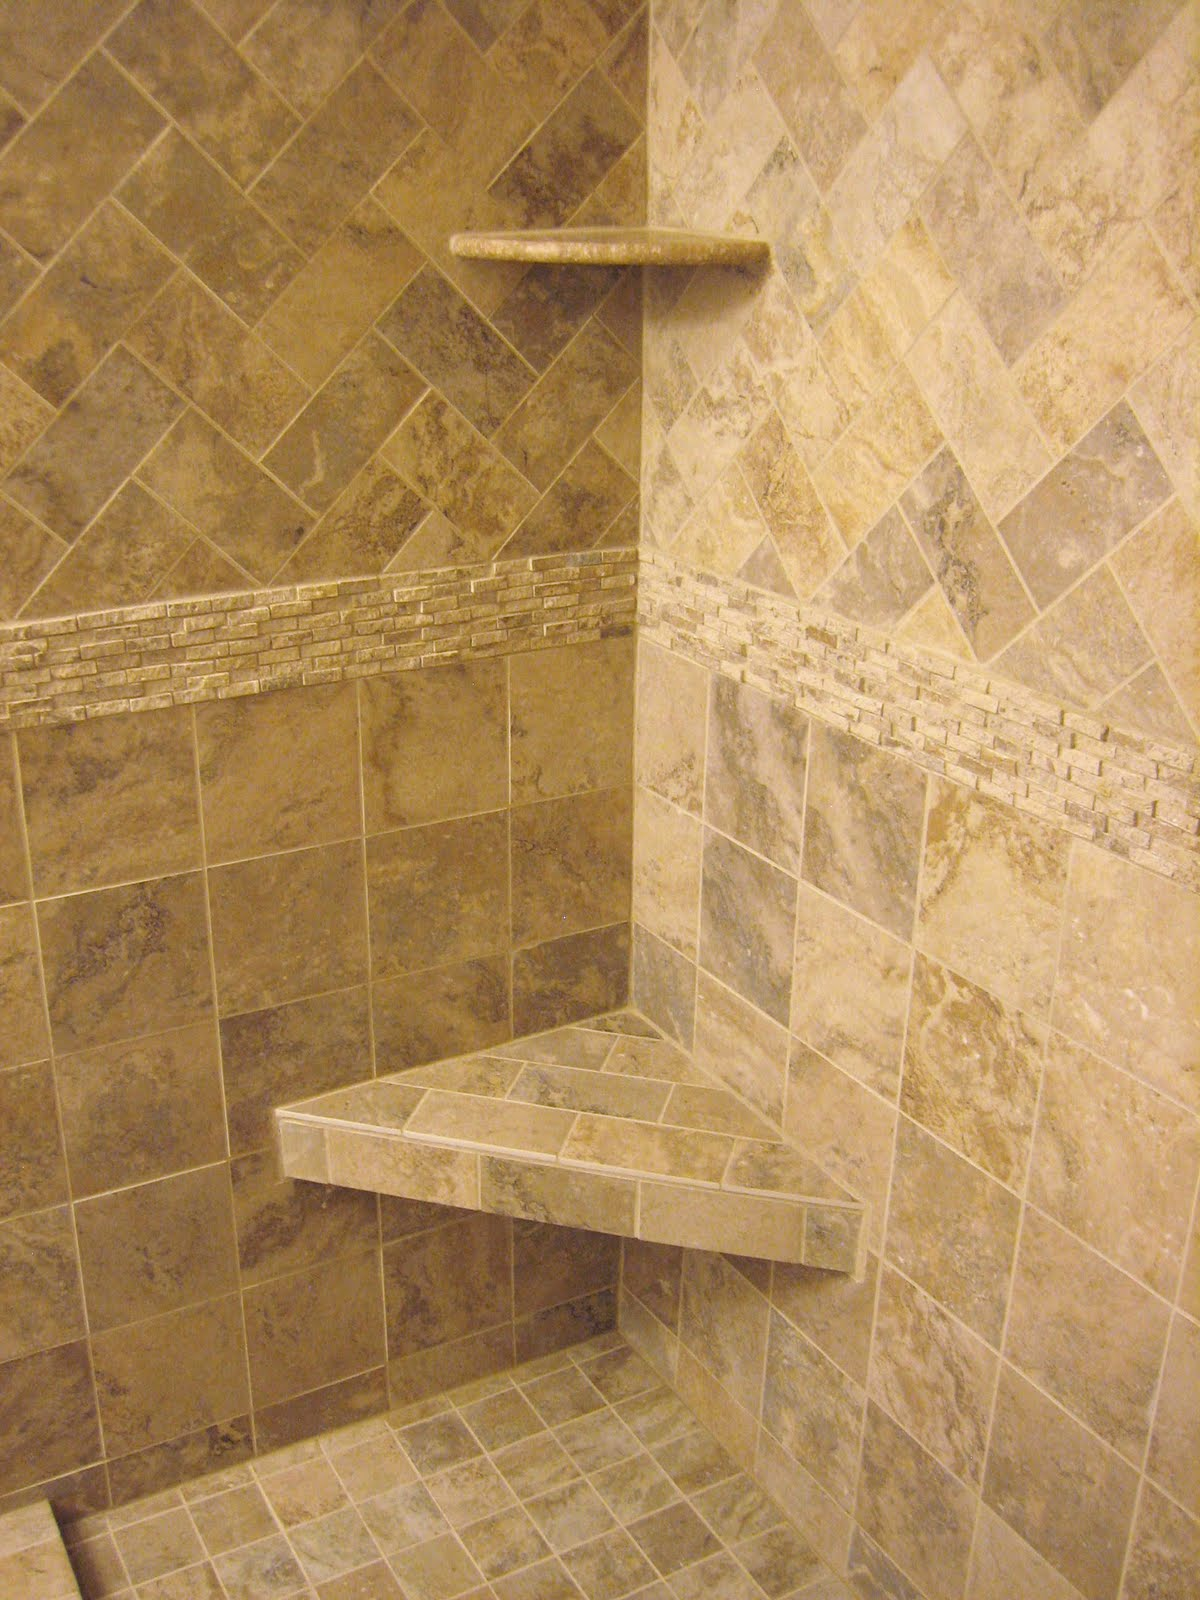 H winter showroom blog luxury master bath remodel athena for Tile designs in bathroom